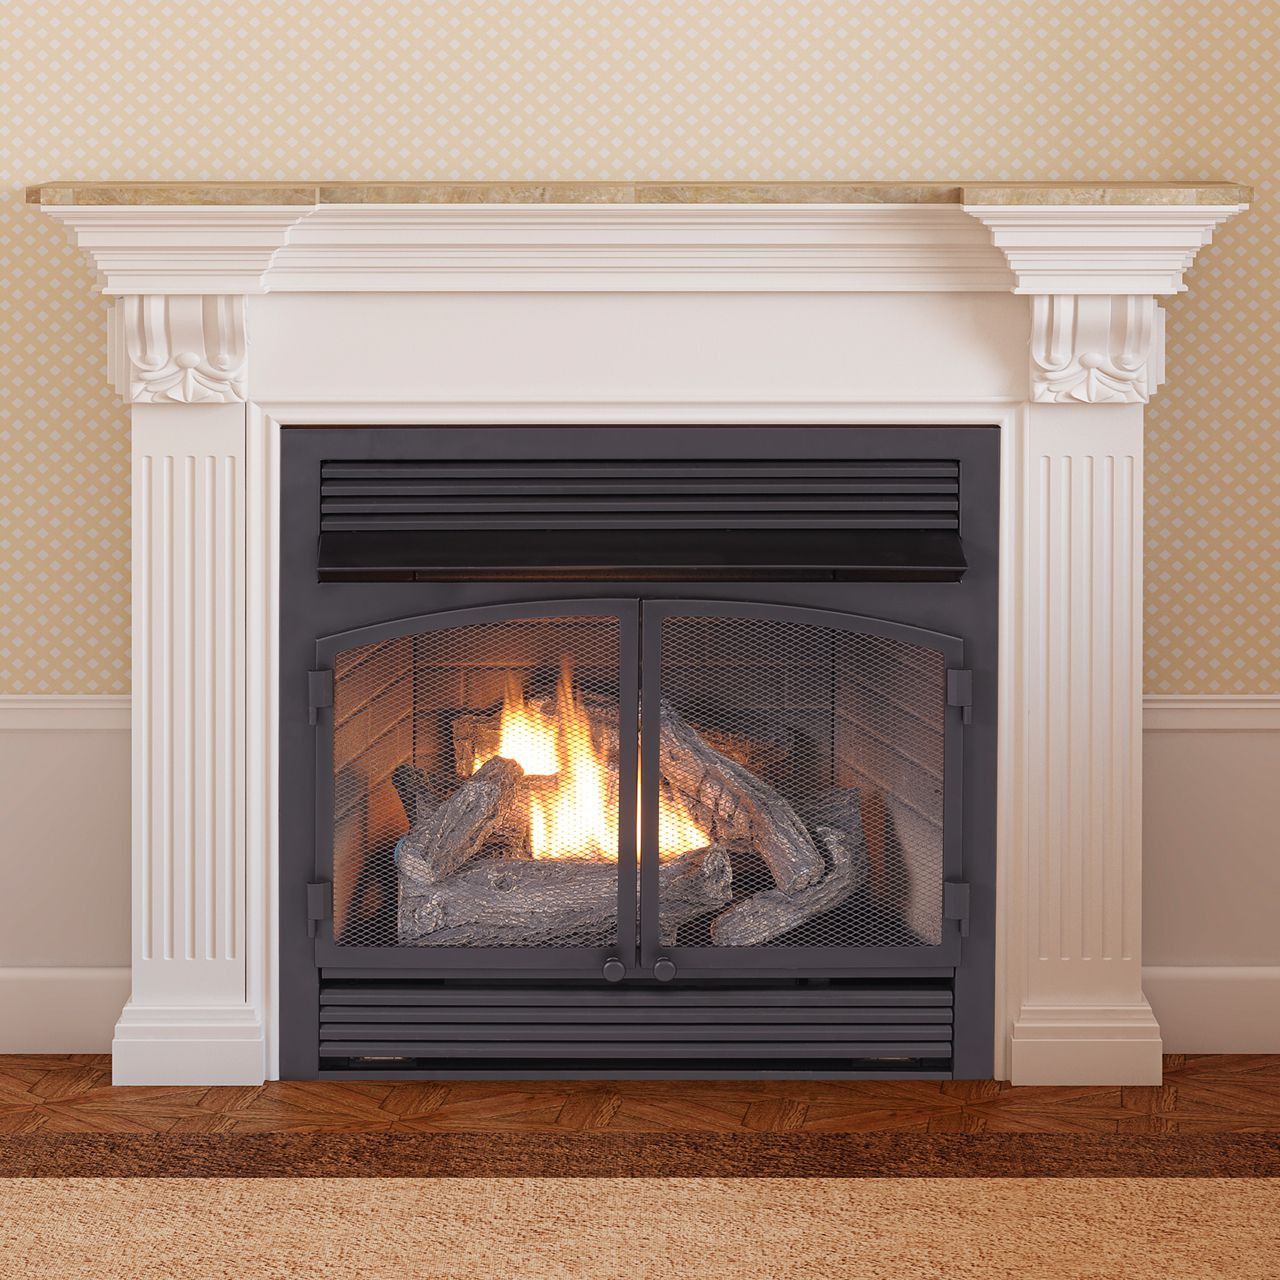 Fireplace Inserts - Factory Buys Direct